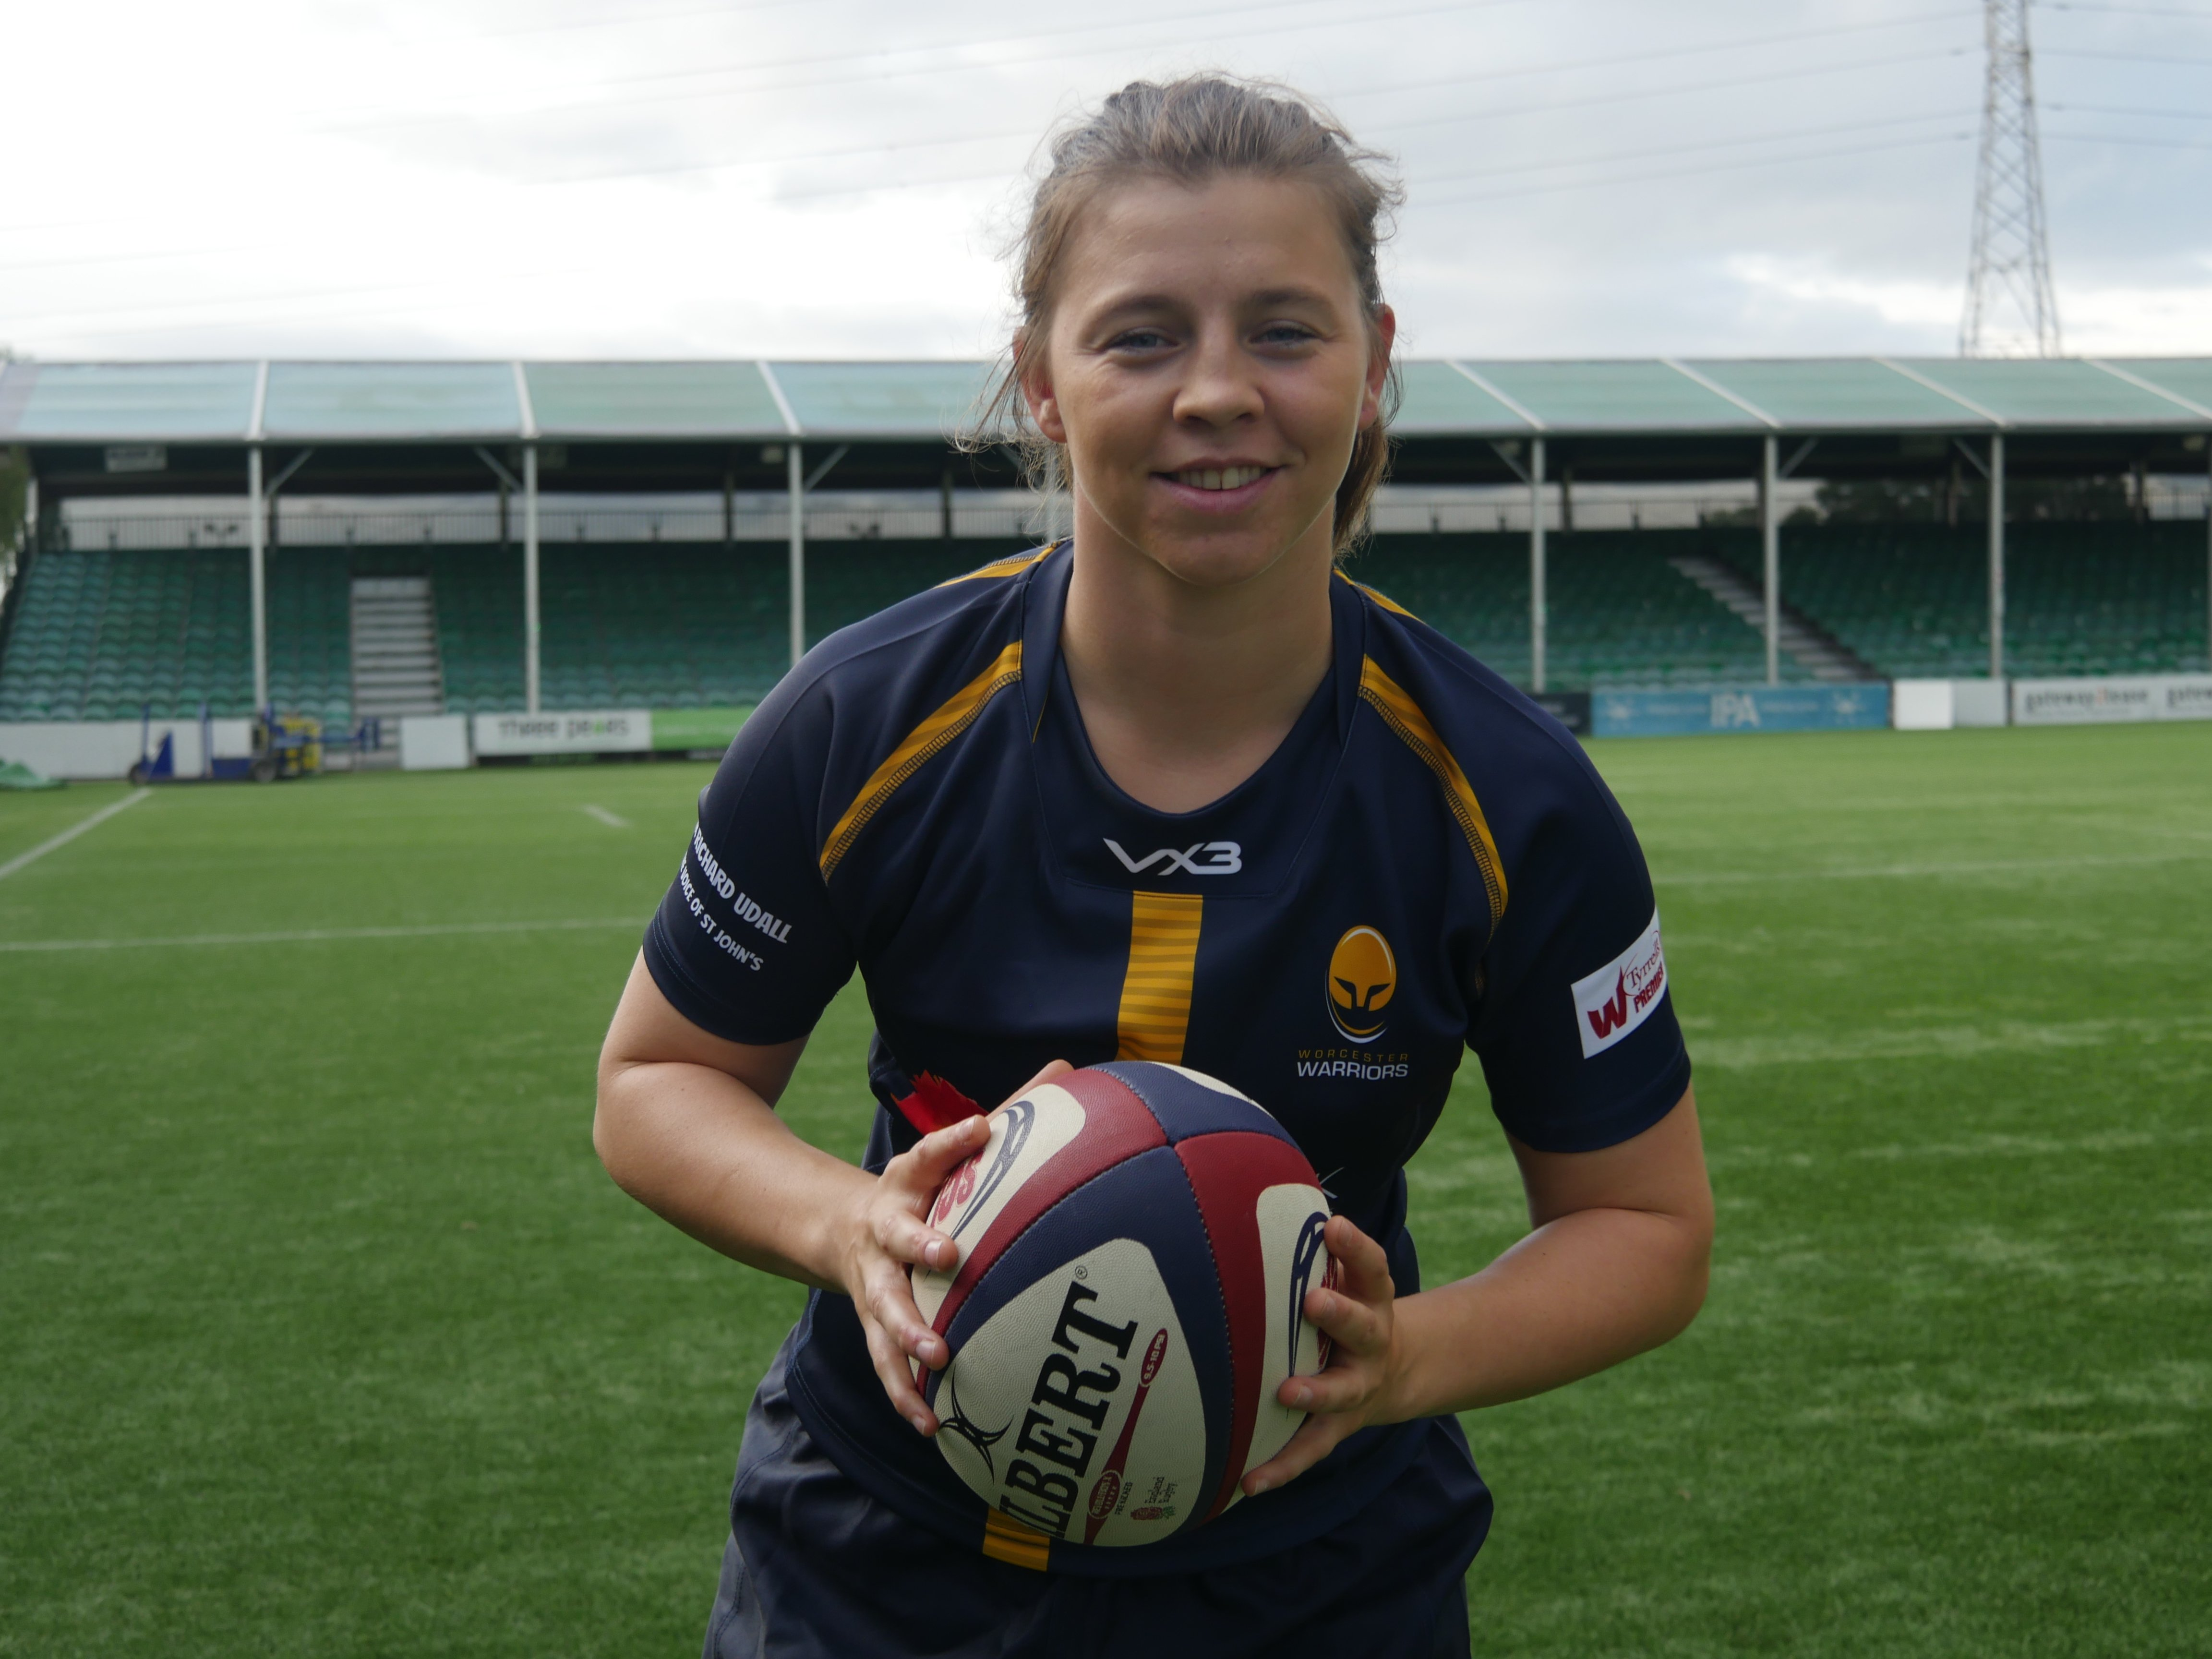 Worcester Warriors captain Lyndsay O'Donnell on the balancing act faced by most women players to earn a living alongside playing the game they love